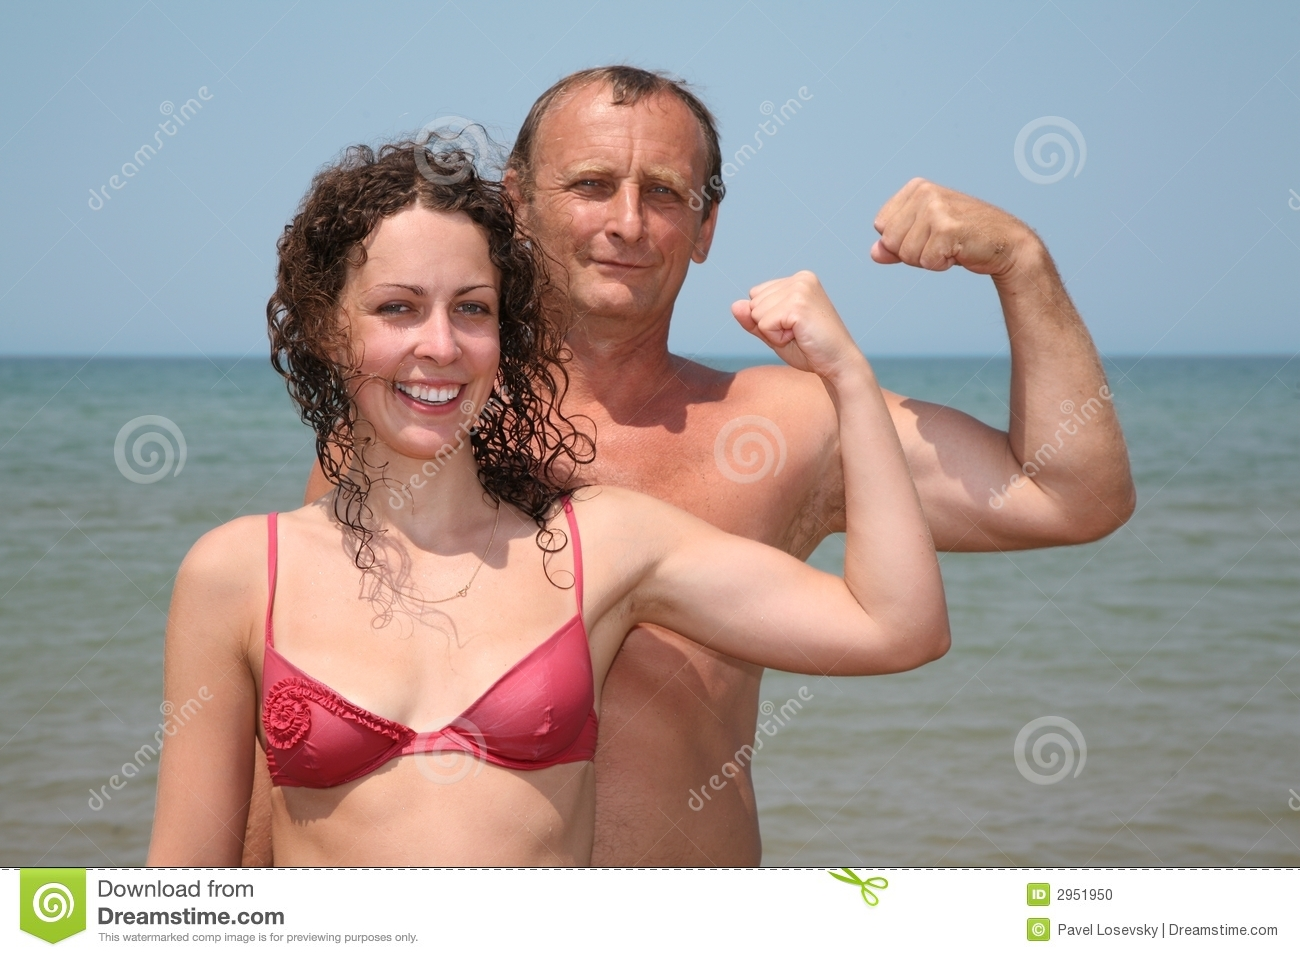 Man and woman show bicepses